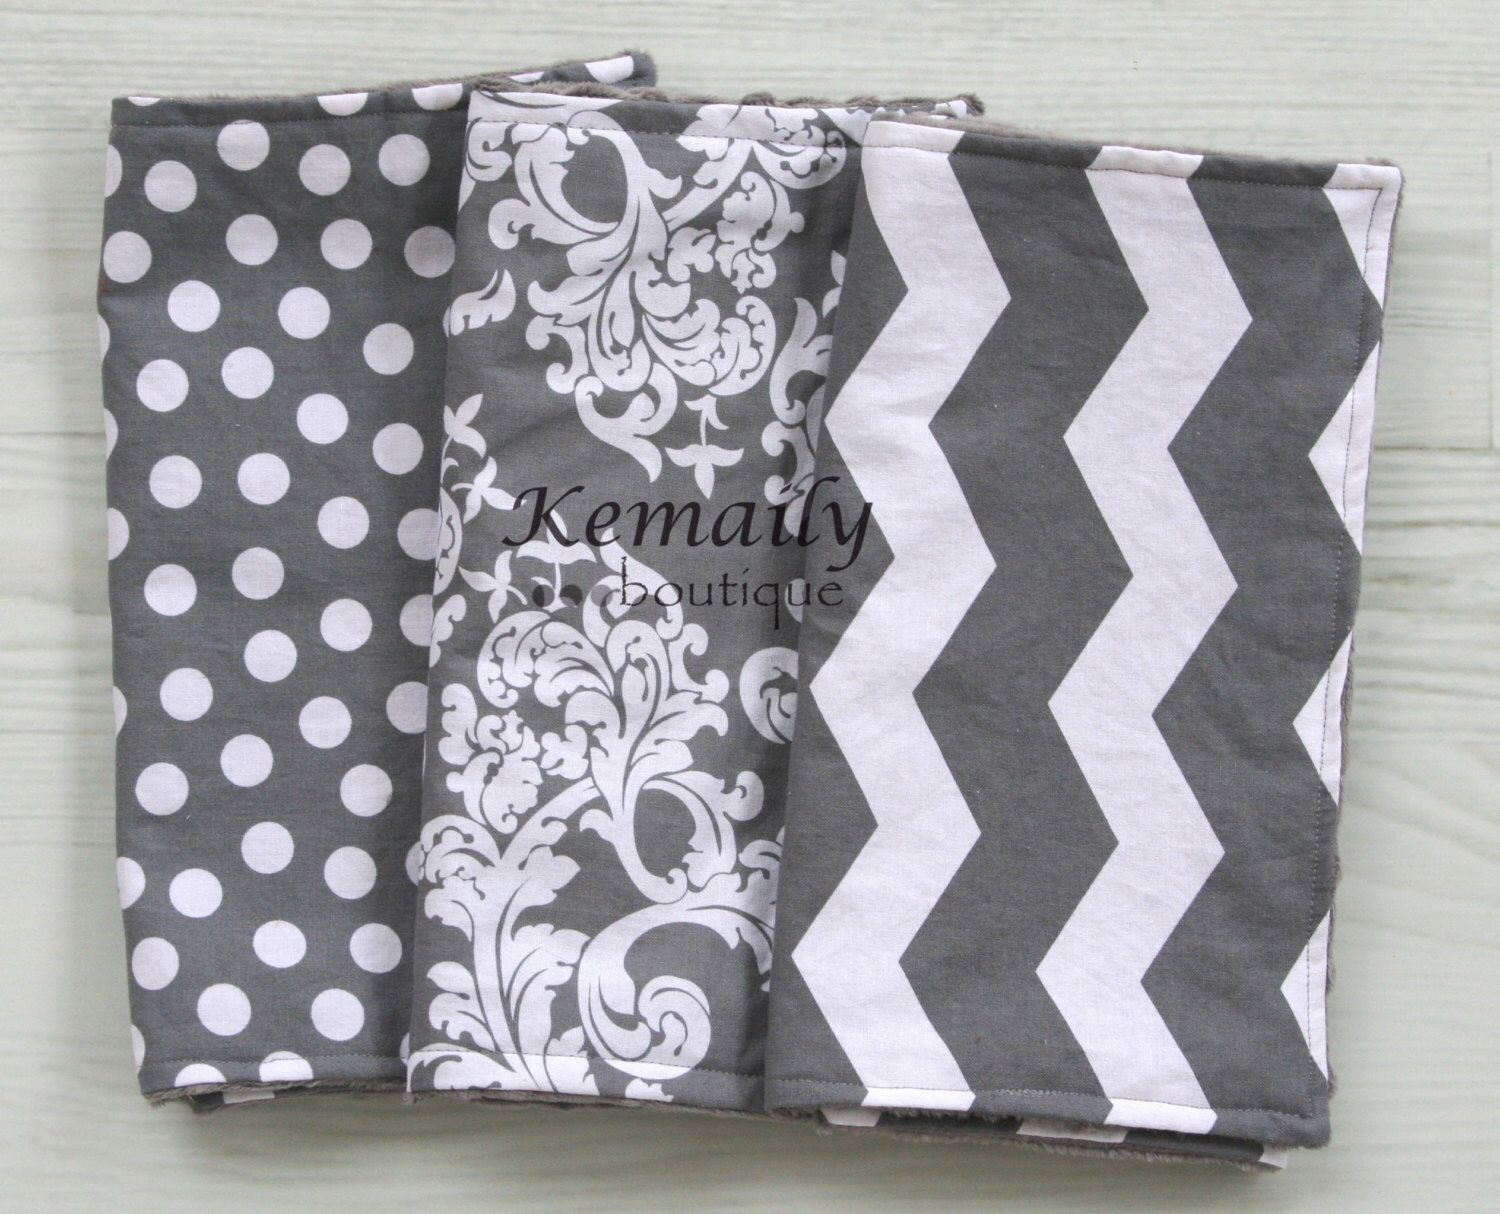 Grey Chevron Baby Minky Burp Cloth Trio From Kemaily by Kemaily on Etsy https://www.etsy.com/listing/76475994/grey-chevron-baby-minky-burp-cloth-trio